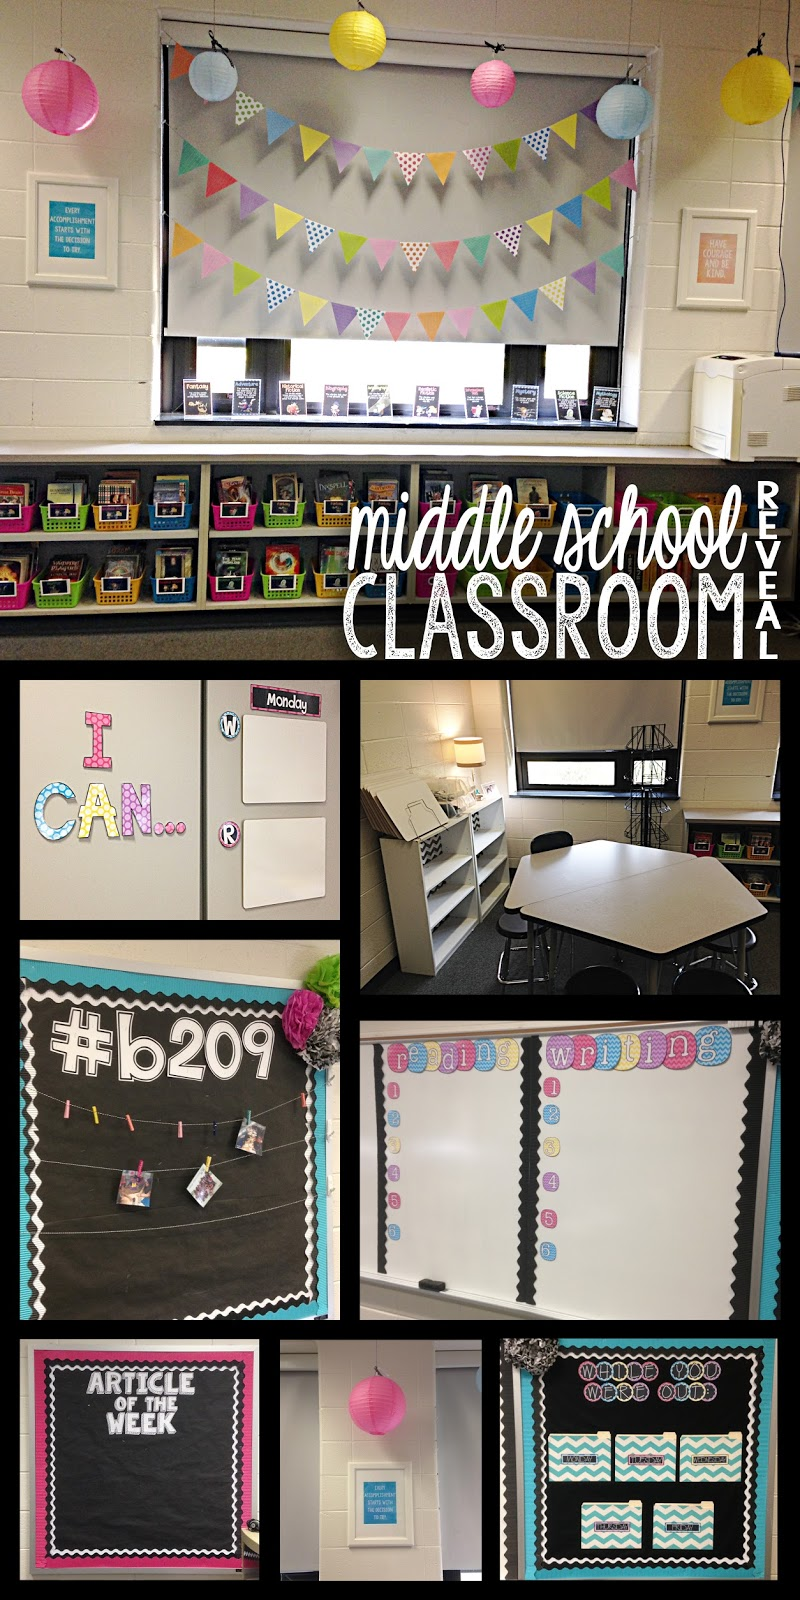 Classroom Decorations Middle School ~ Musings from the middle school classroom reveal